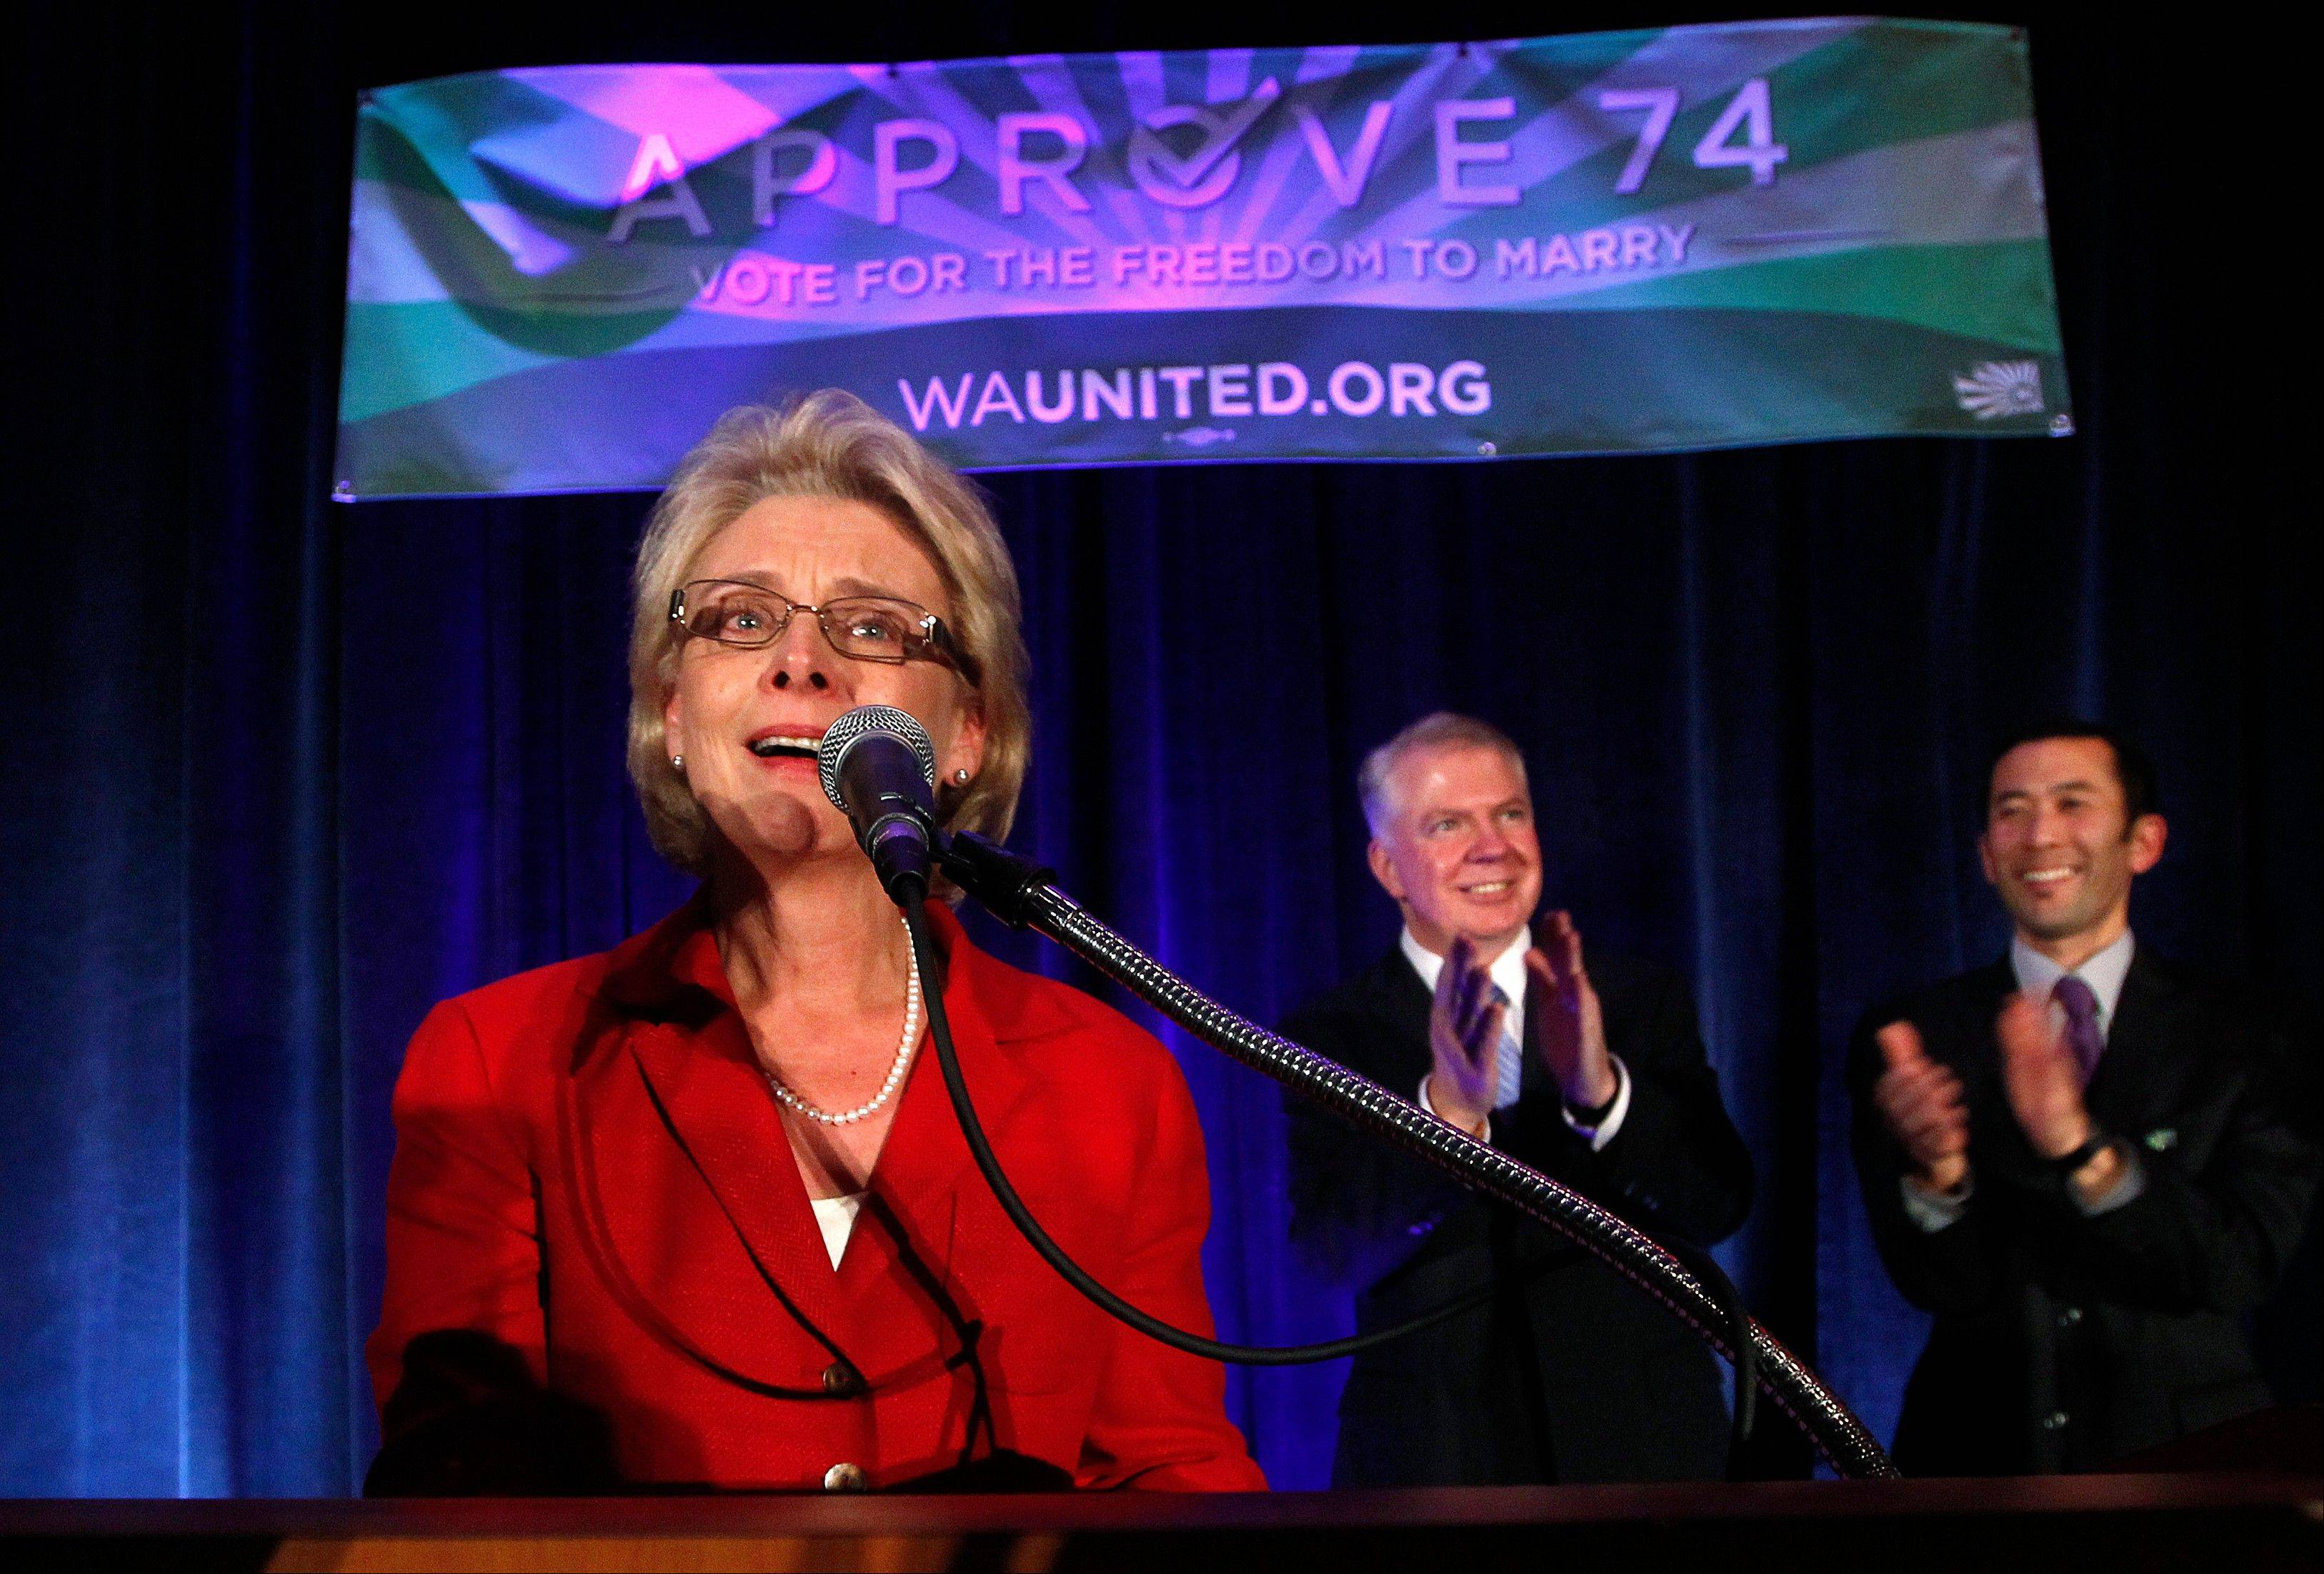 A teary-eyed Gov. Chris Gregoire, left, speaks as Sen. Ed Murray, center, and his partner Michael Shiosaki applaud behind at an election watch party for proponents of Referendum 74, which would uphold the state's new same-sex marriage law.